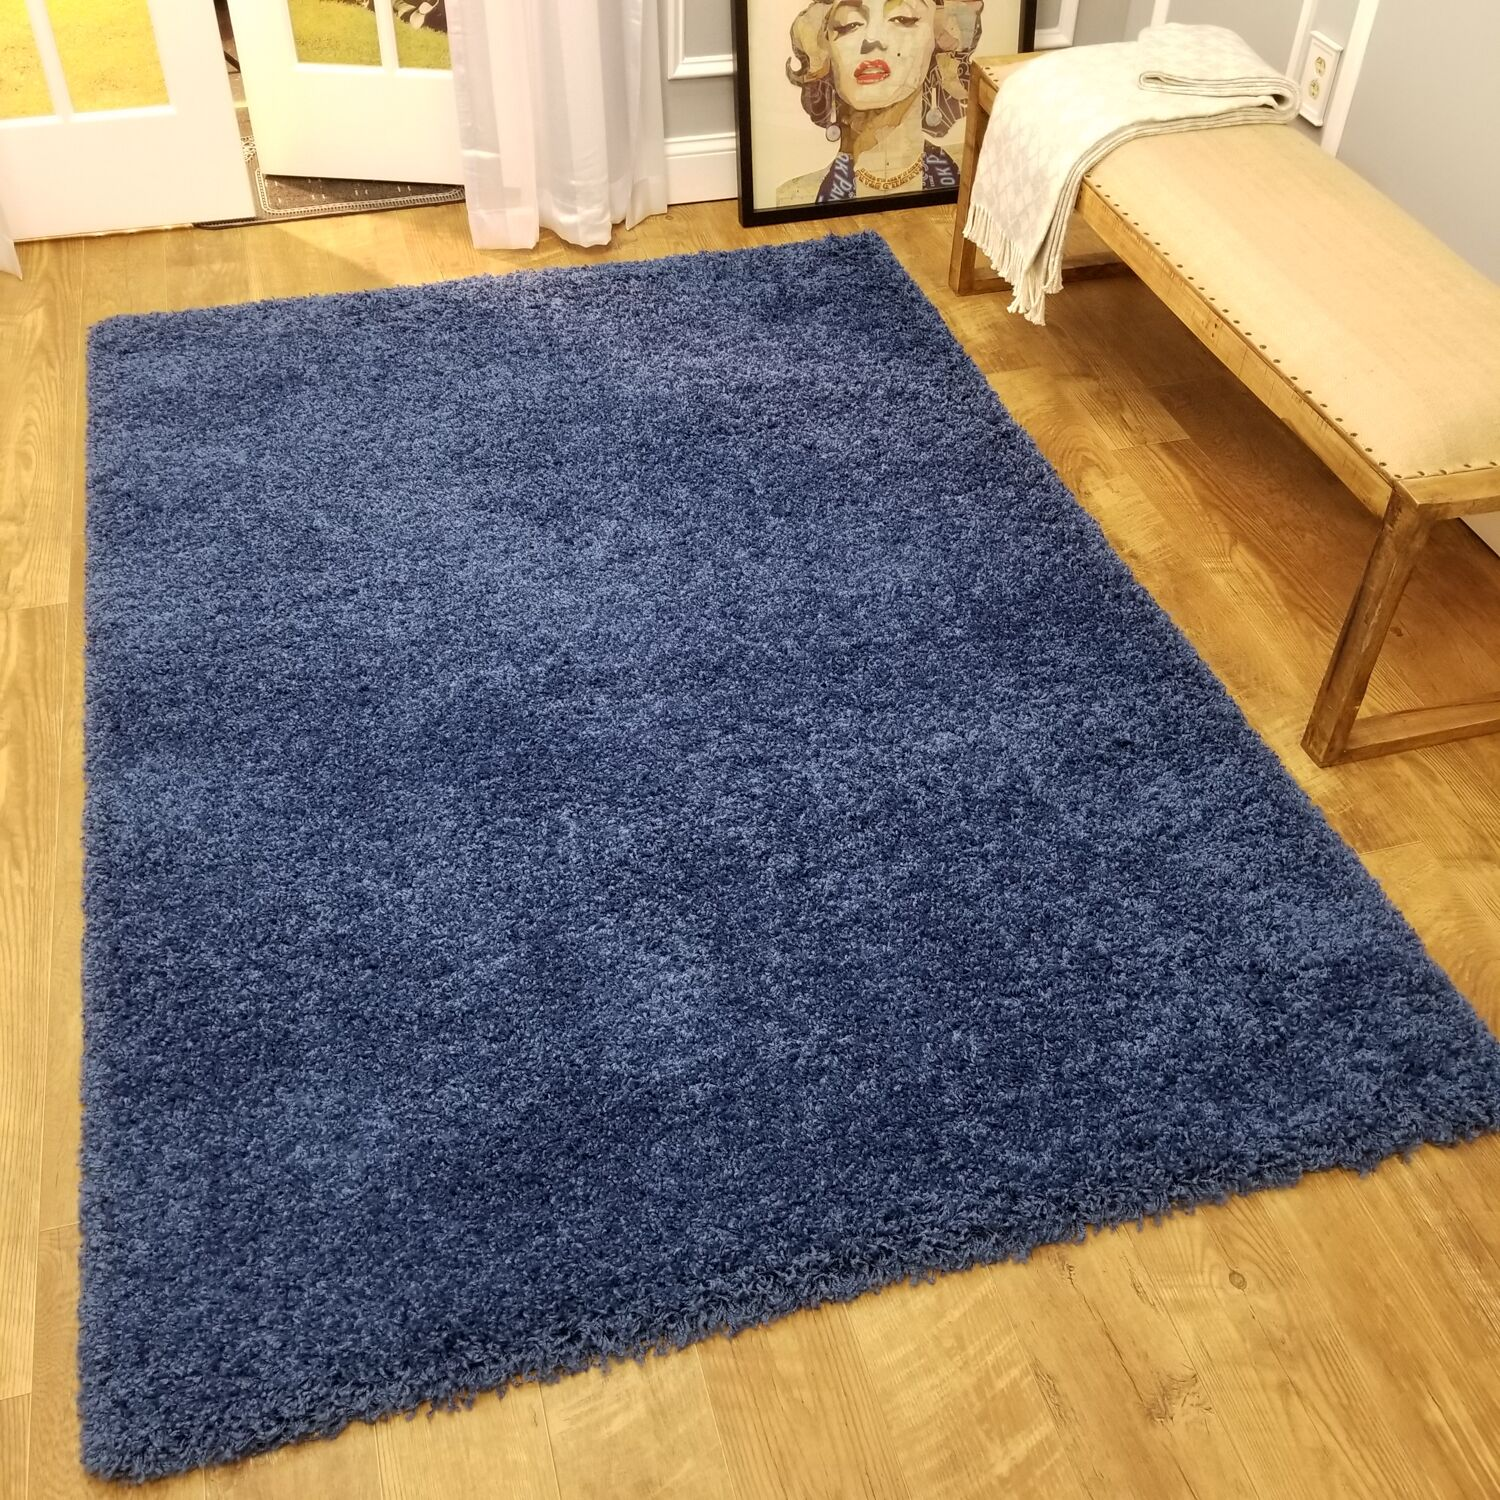 Burns Solid Navy Area Rug Rug Size: Rectangle 6'7